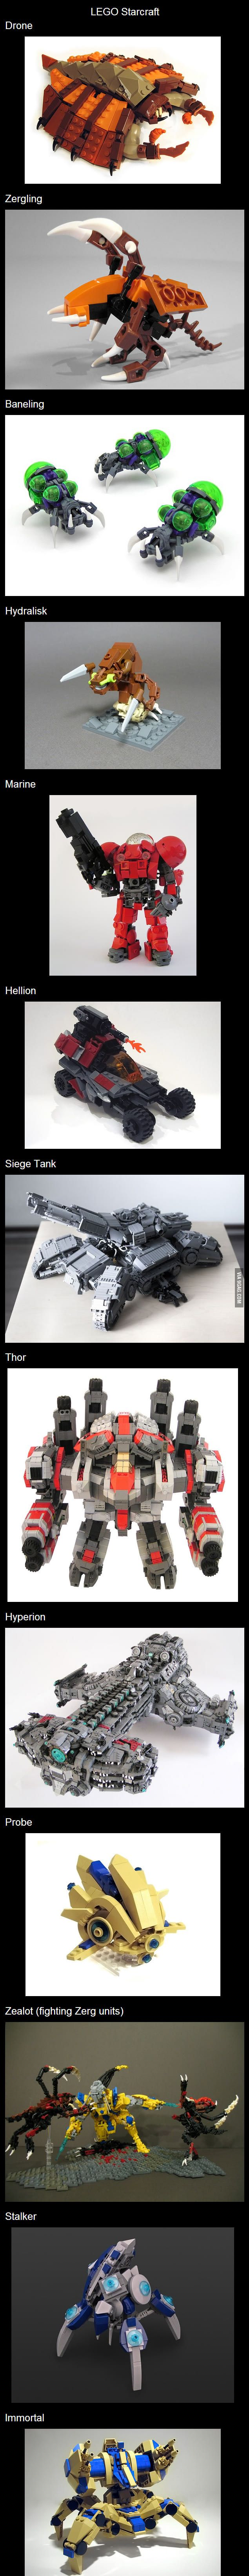 Best Inventions Lego Starcraft Best Inventions Pinterest